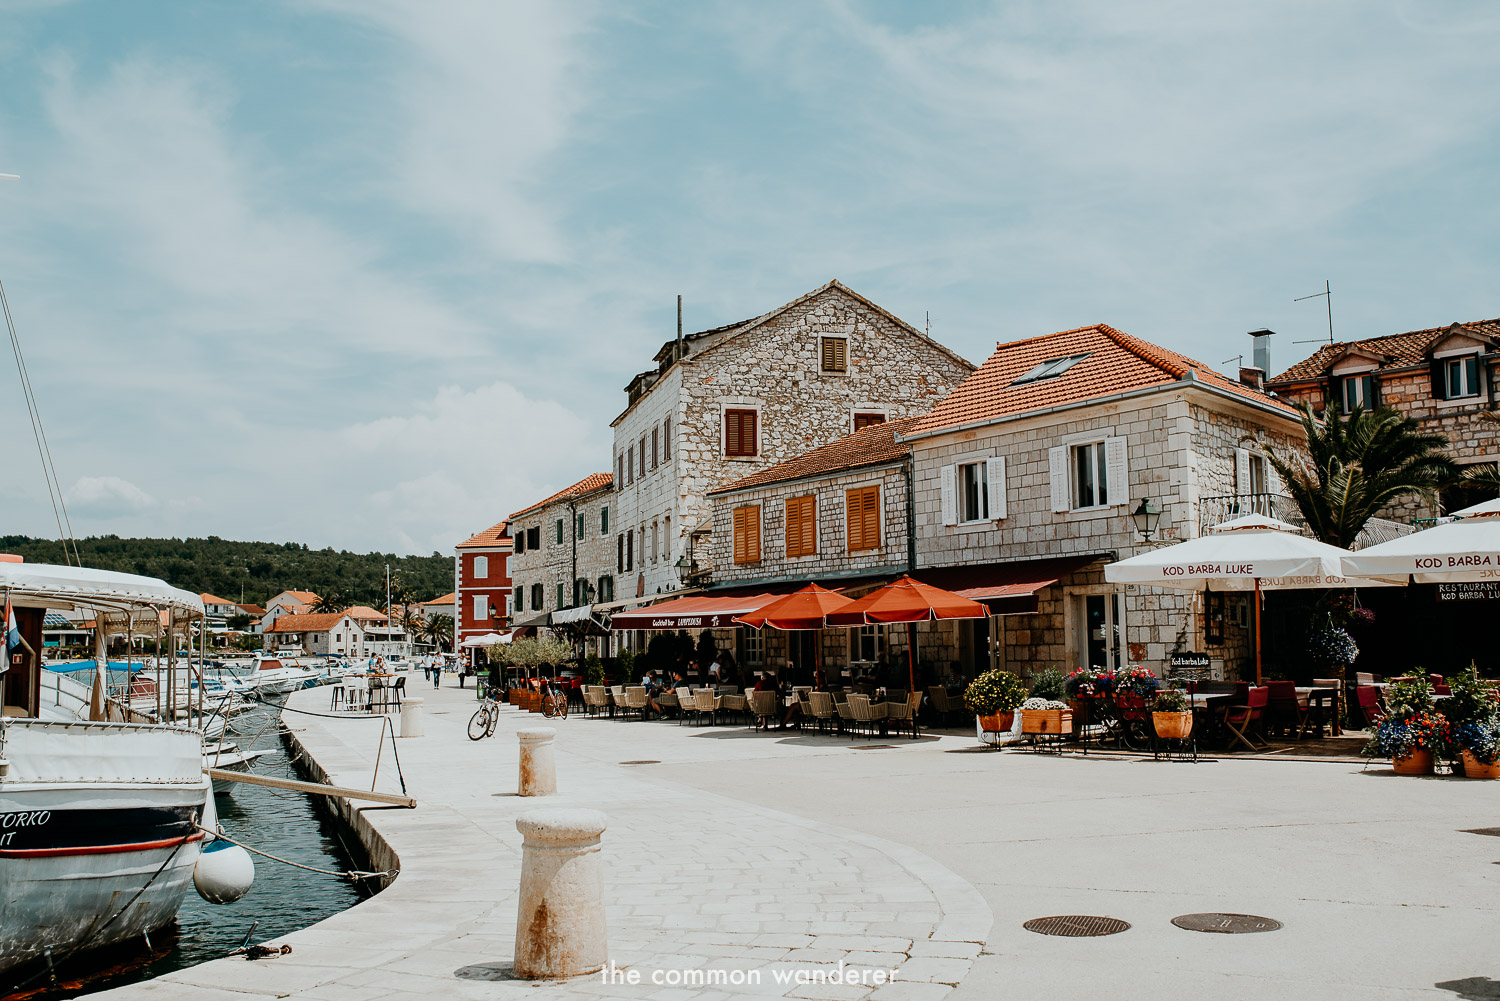 Stari Grad's picturesque riva is one of the best things to do in Stari Grad